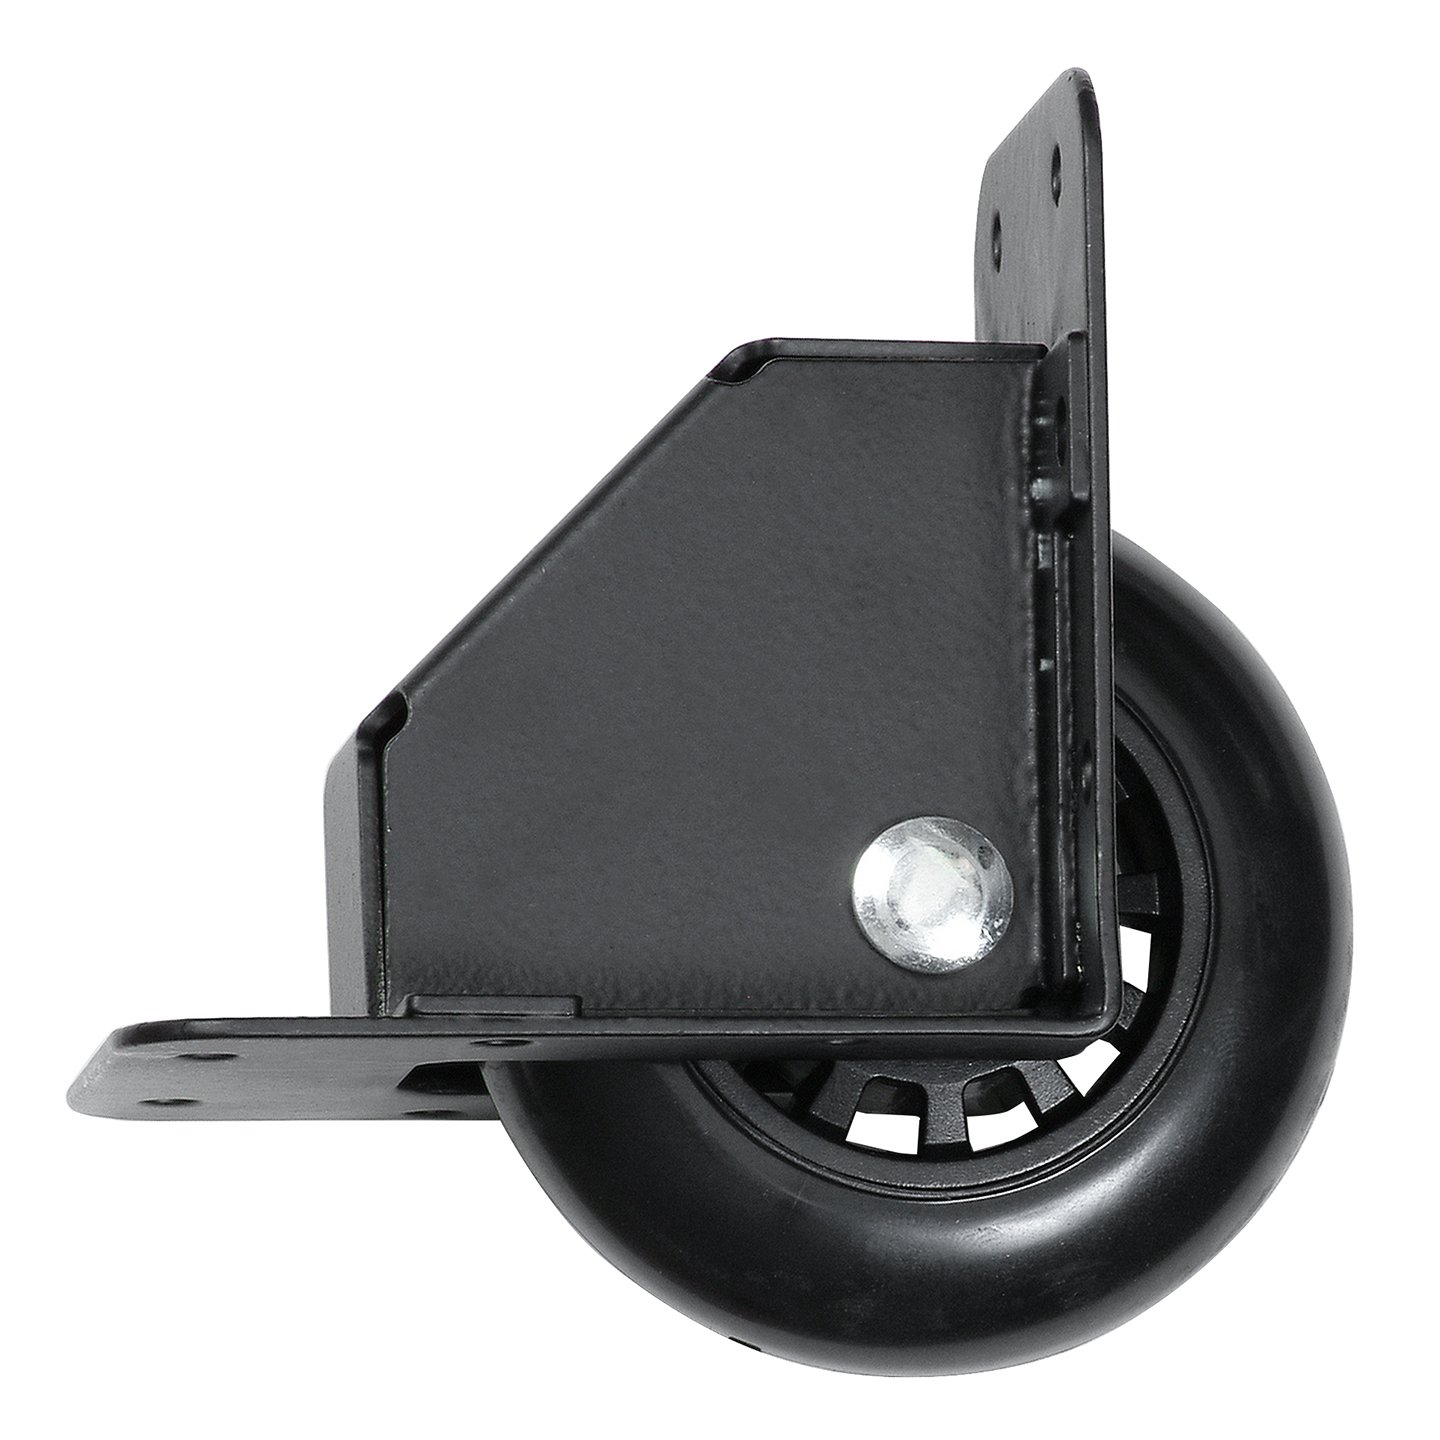 Reliable Hardware Company RH 9024BK A Recessed Tilt Caster Housing Medium Size 2.75 Inch Diameter Wheel Black